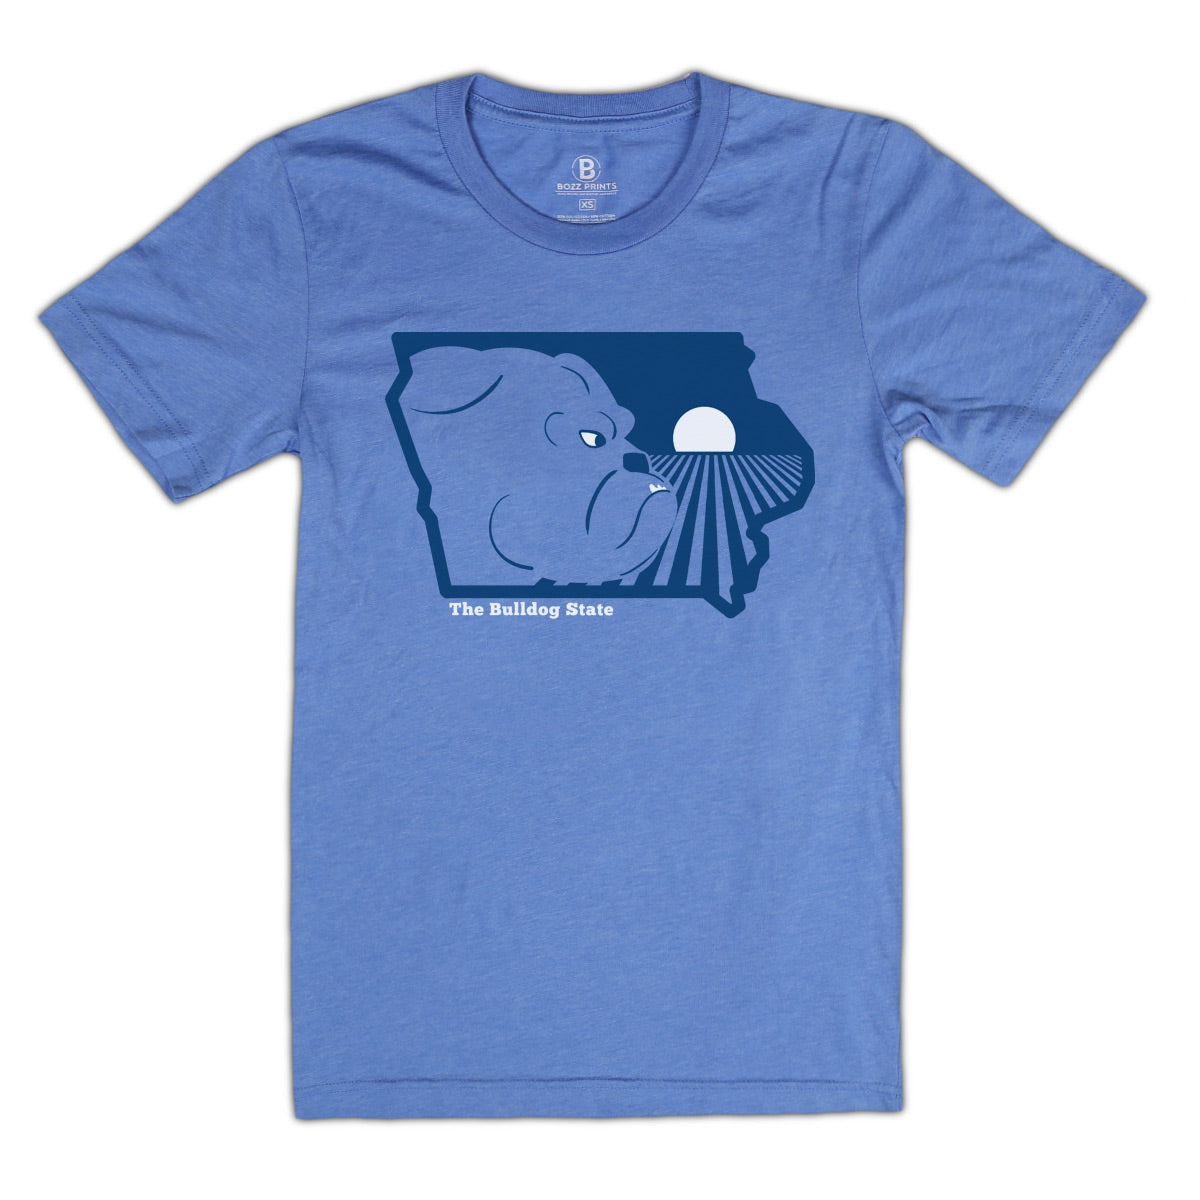 The Bulldog State T-Shirt